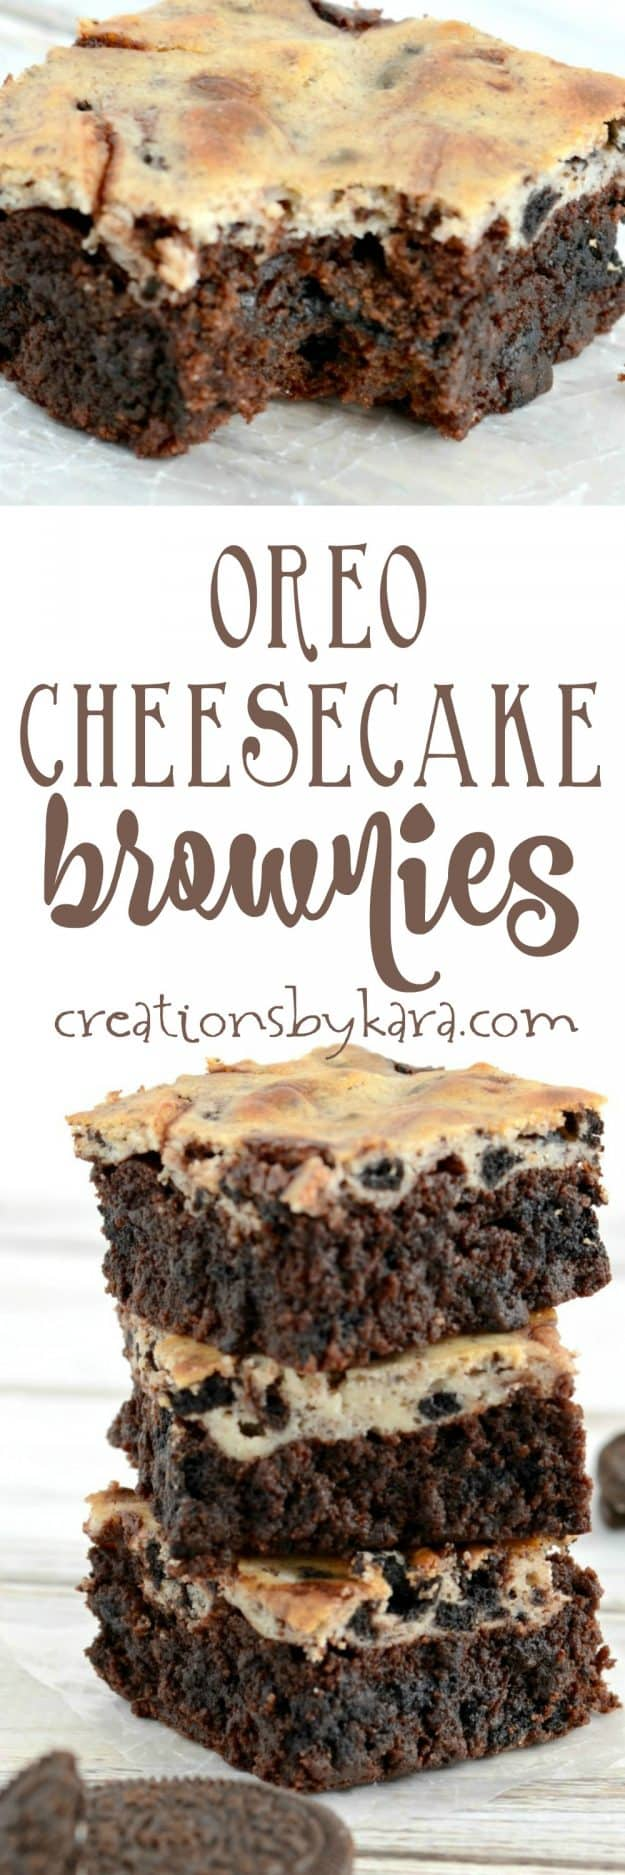 oreo cheesecake brownies recipe collage